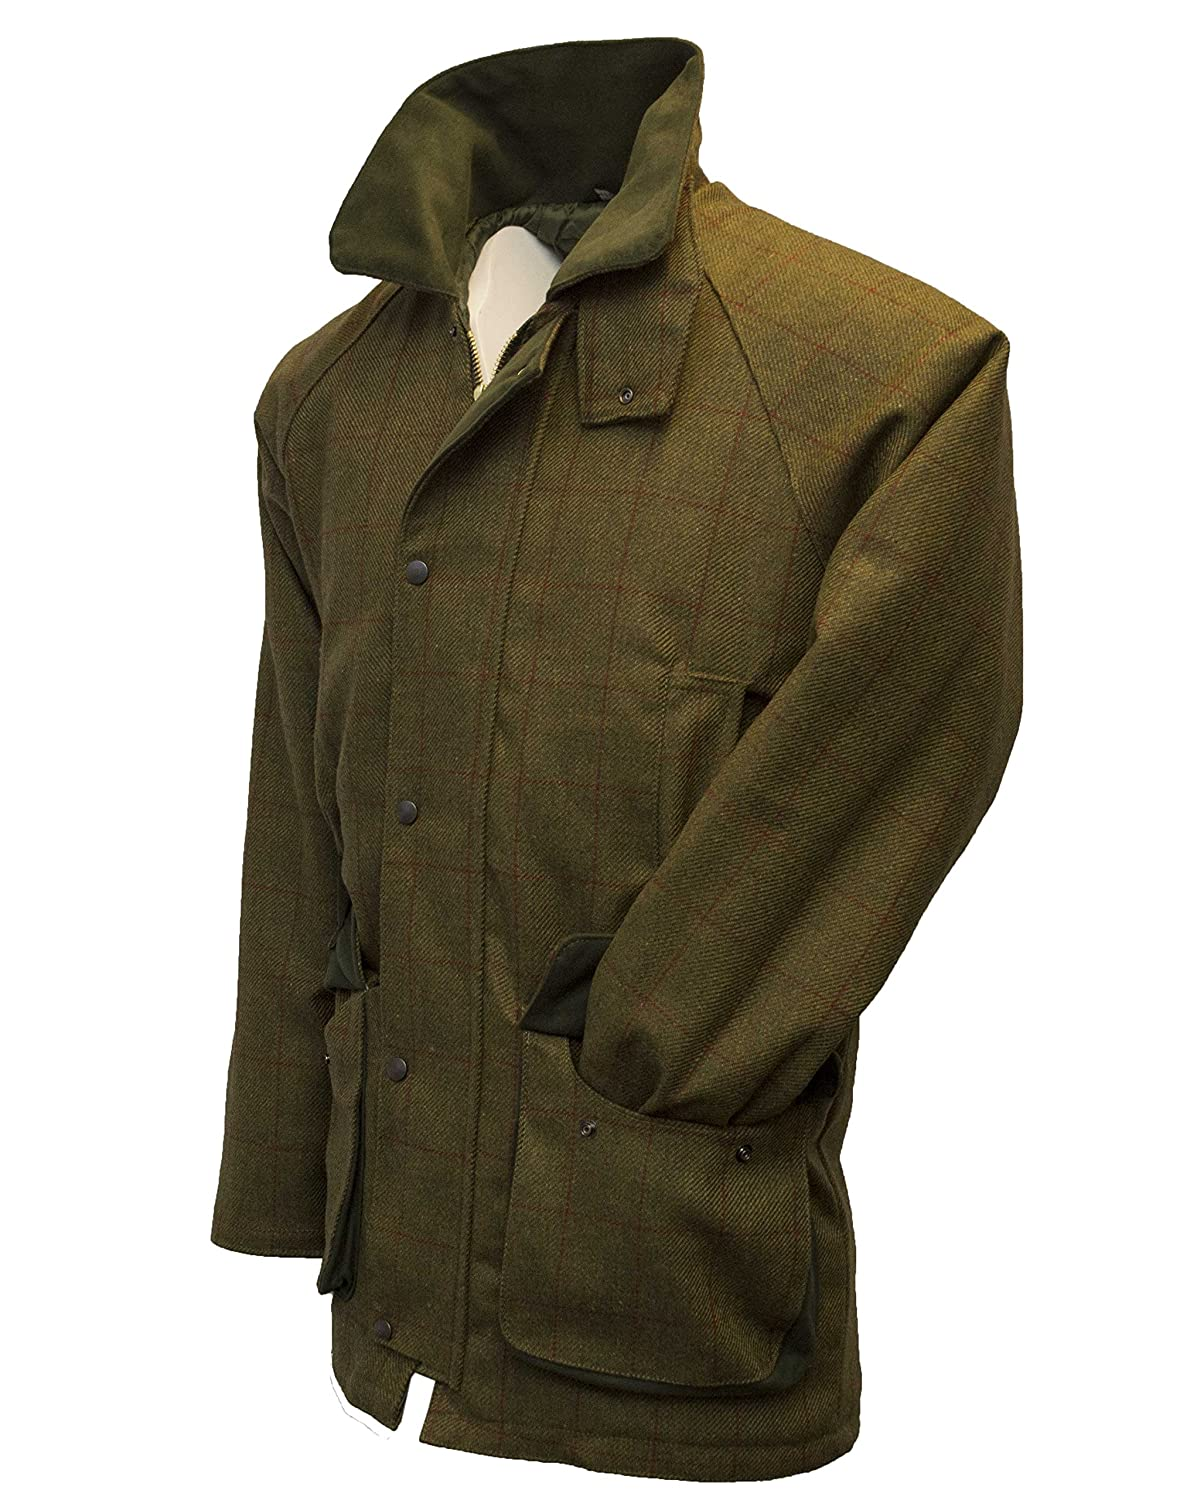 3XL Walker & HawkesMens Derby Tweed Shooting Hunting Country JacketRed Stripe